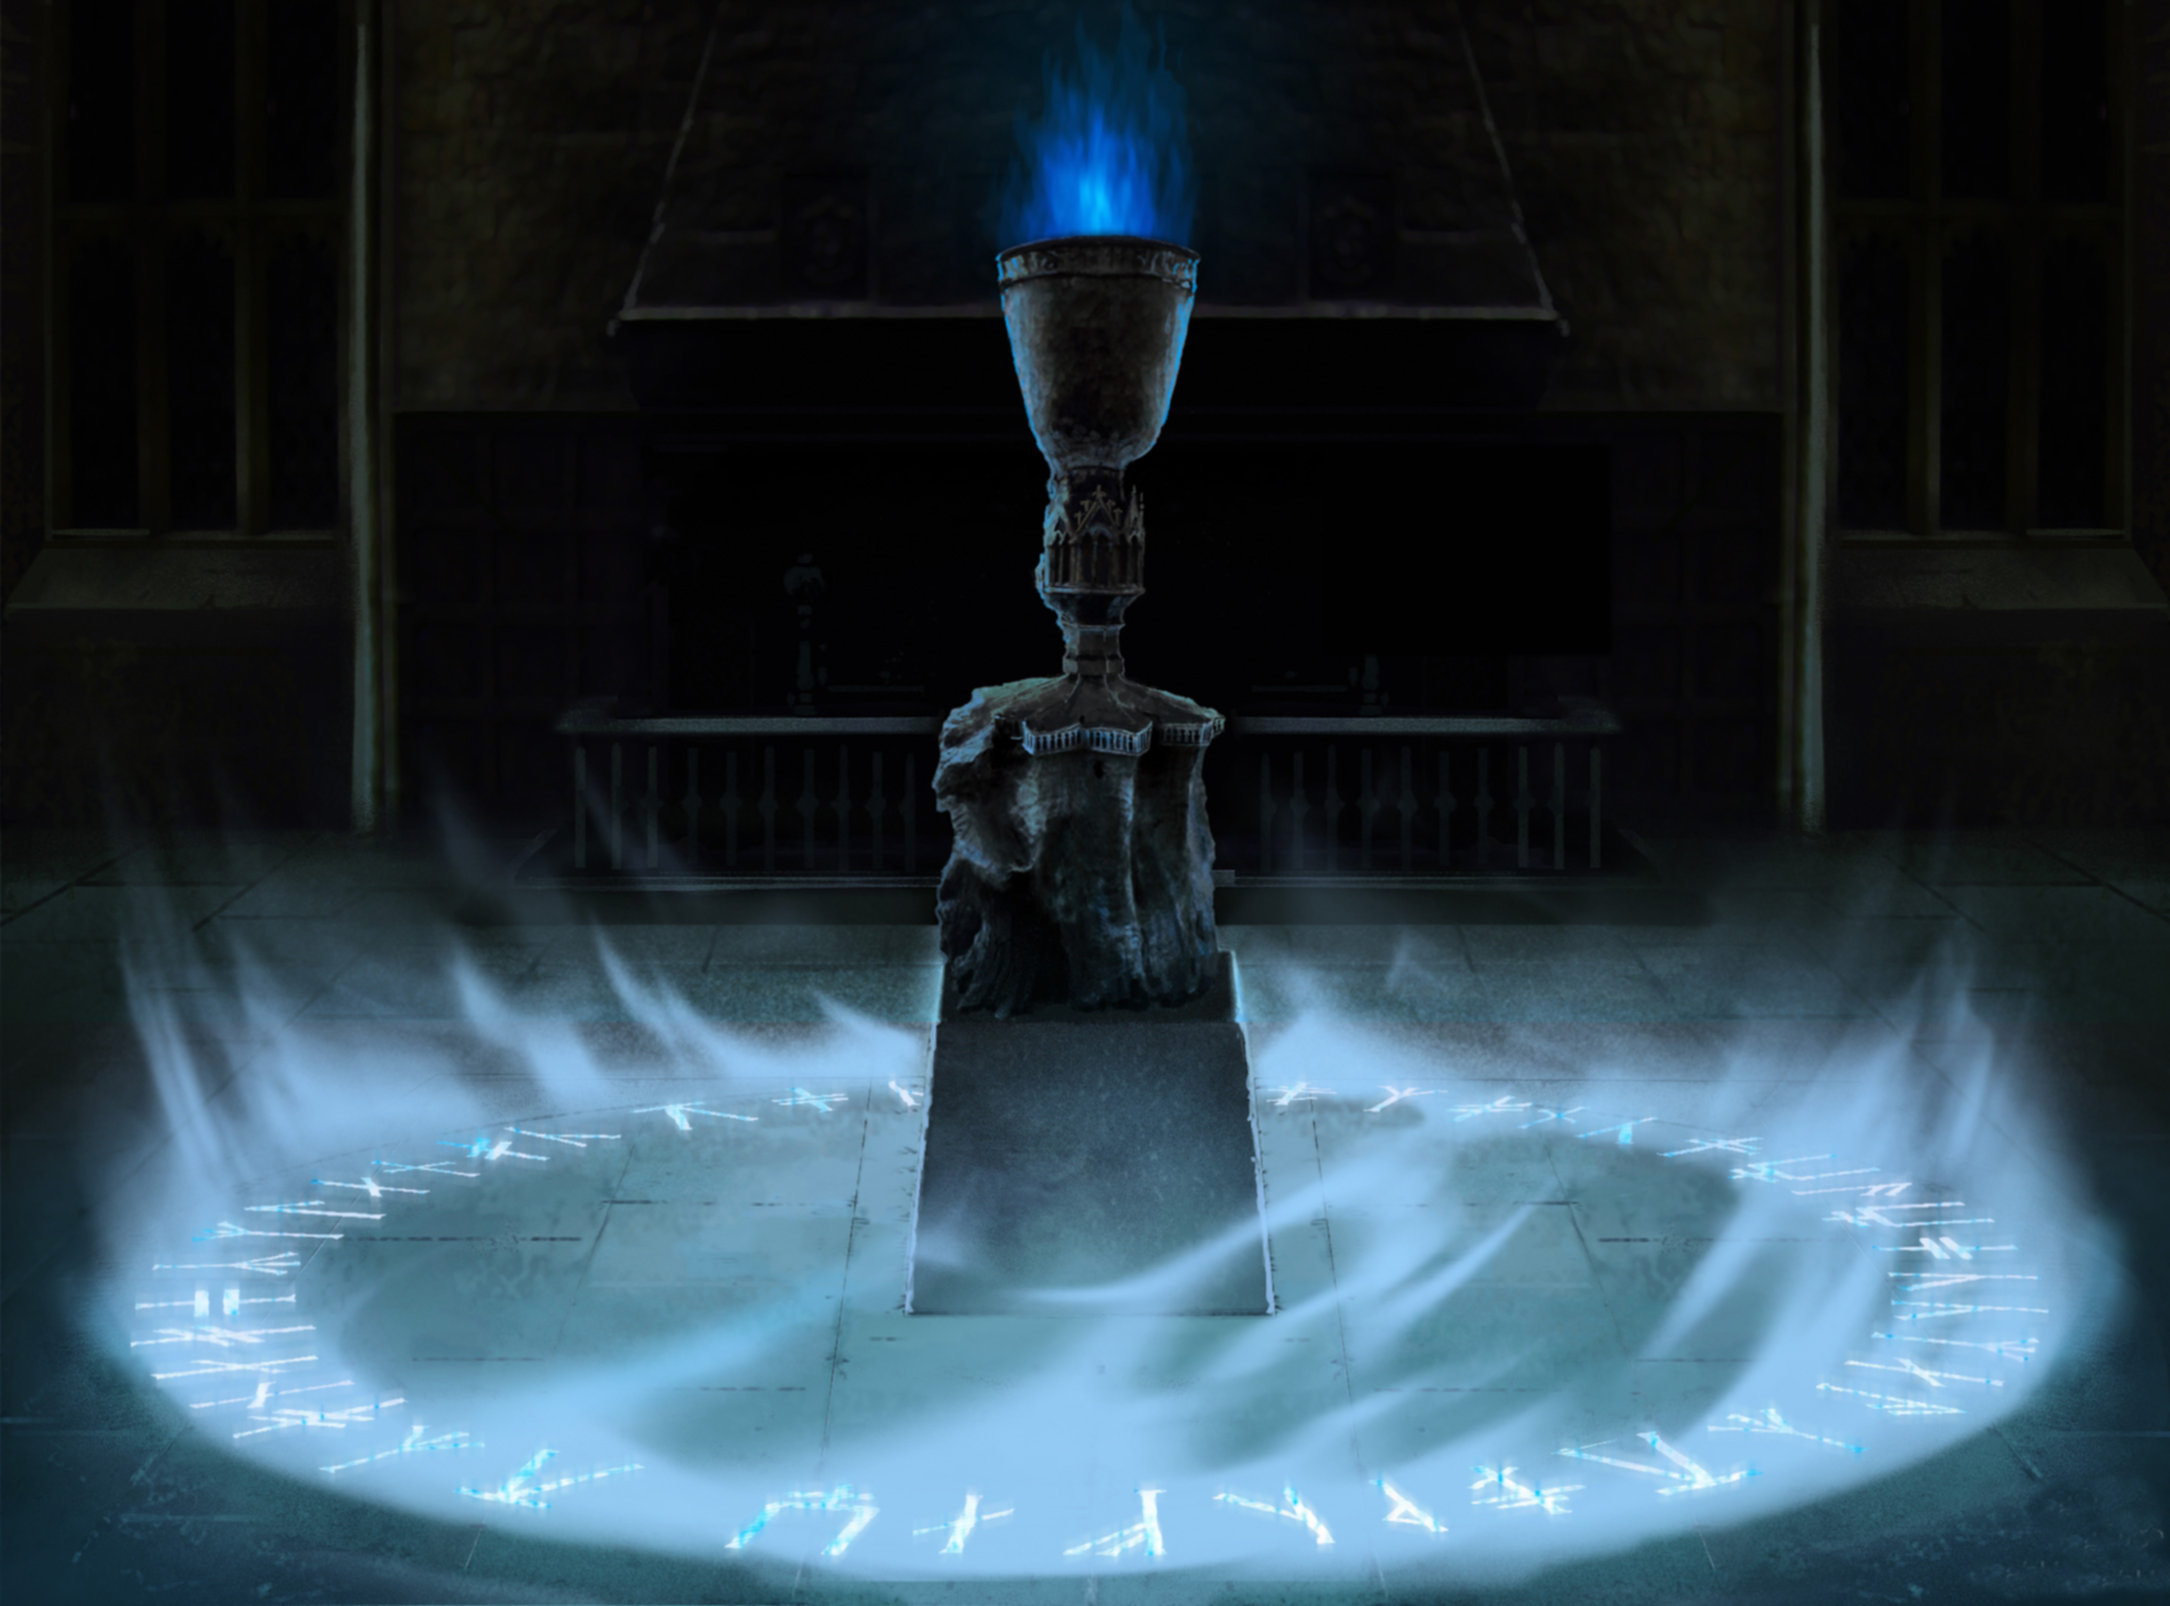 An illustration of the Goblet of Fire and the Age Line.